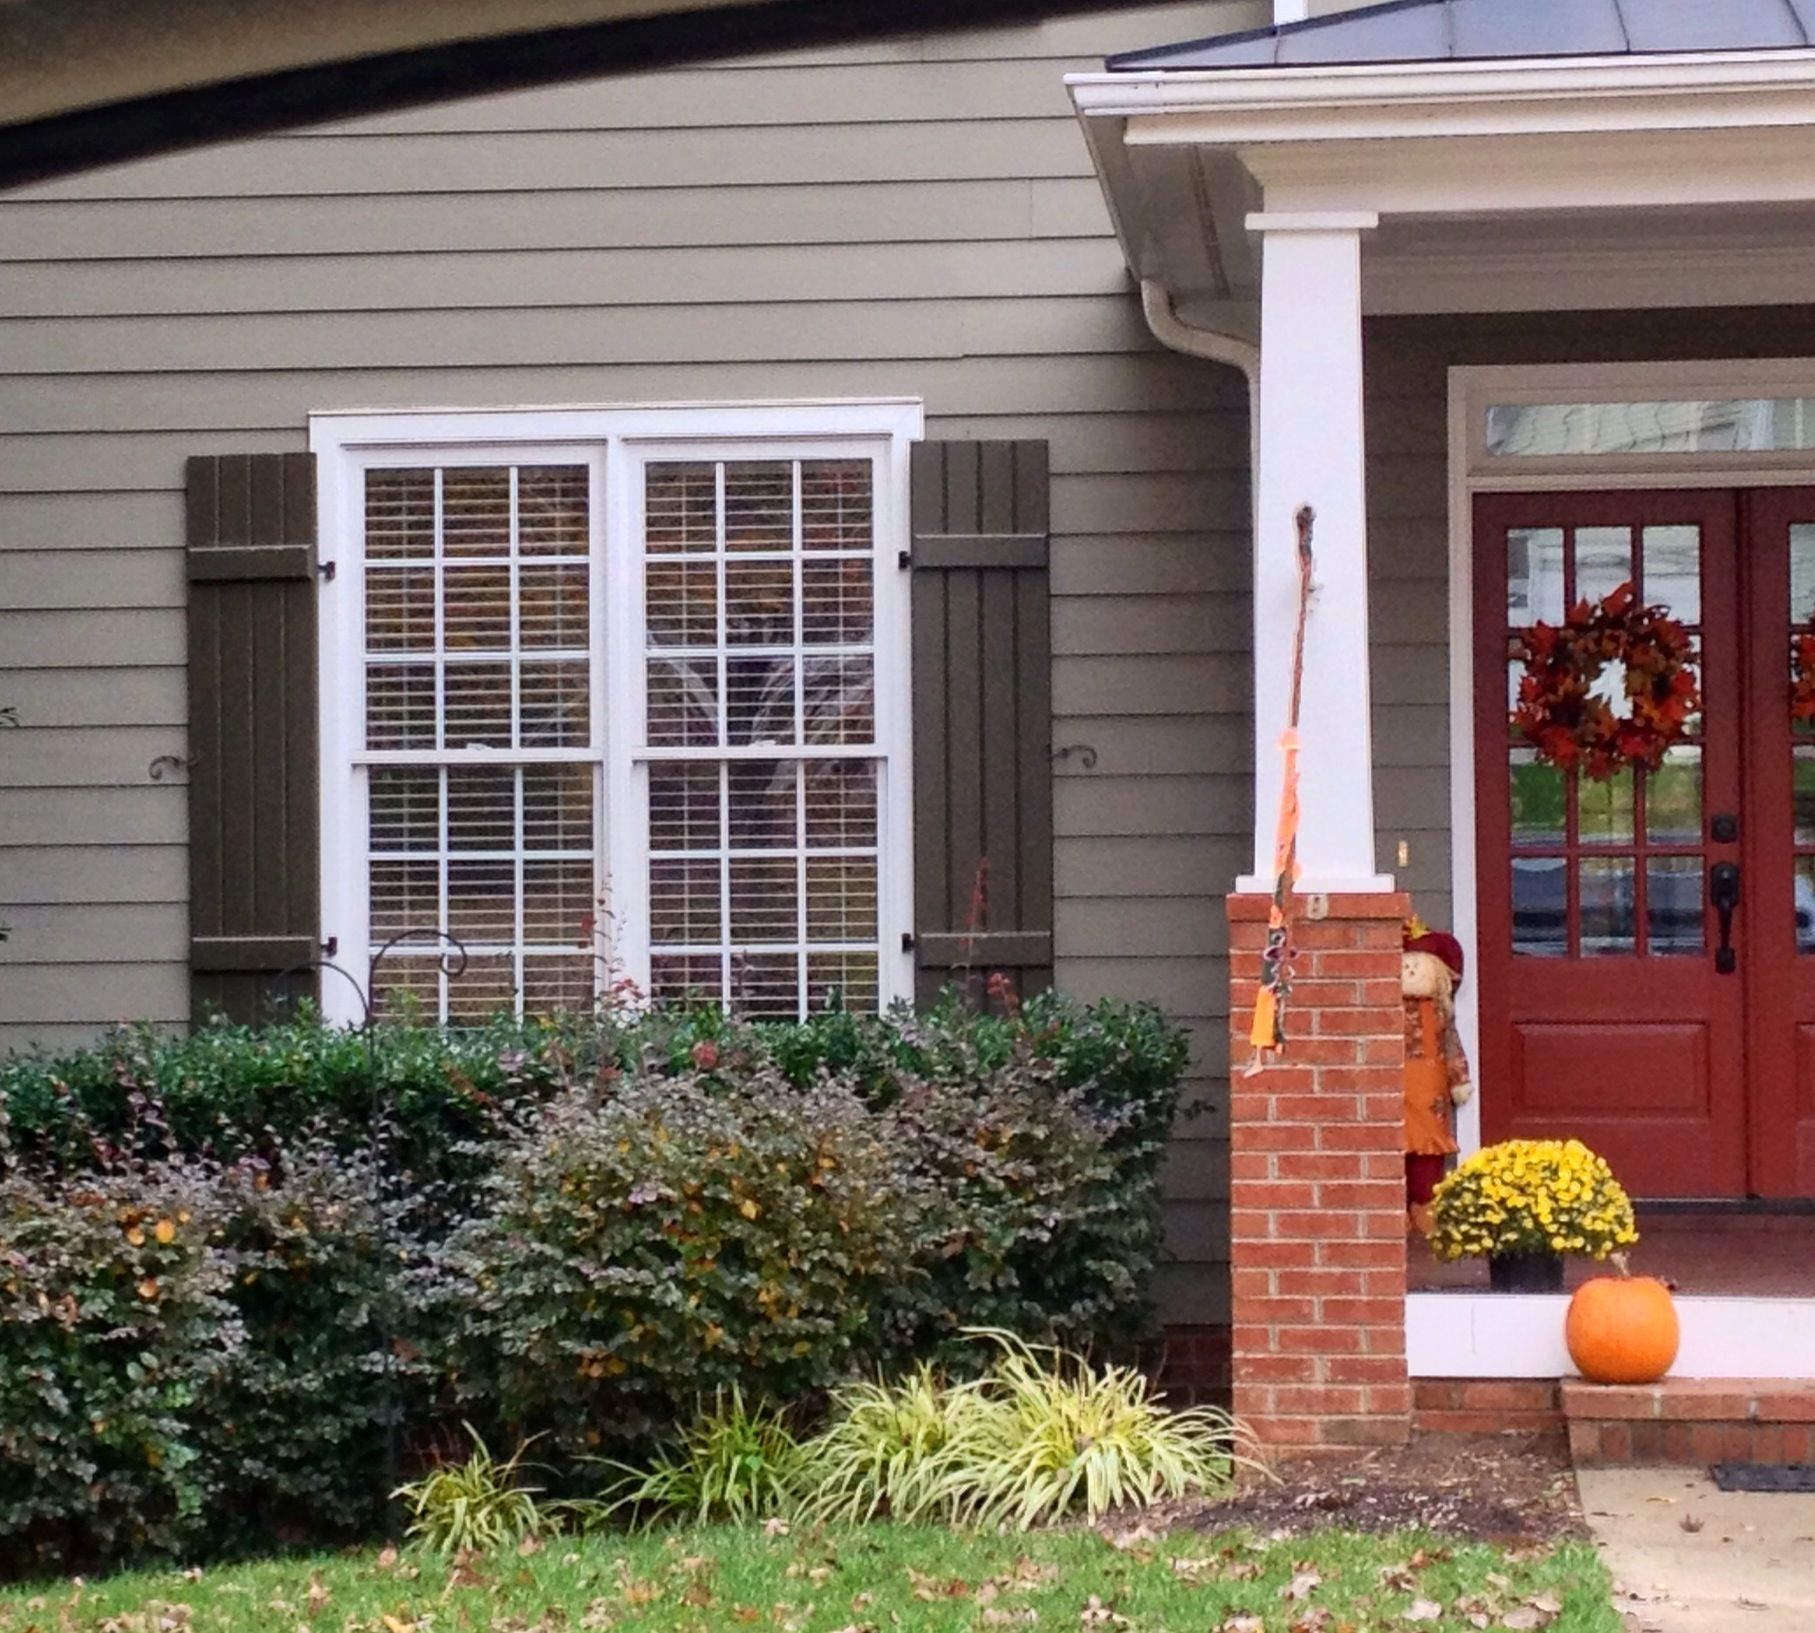 Brick House Front Door Color: Siding Color, Front Door Color, Trim Color, Shutter Color